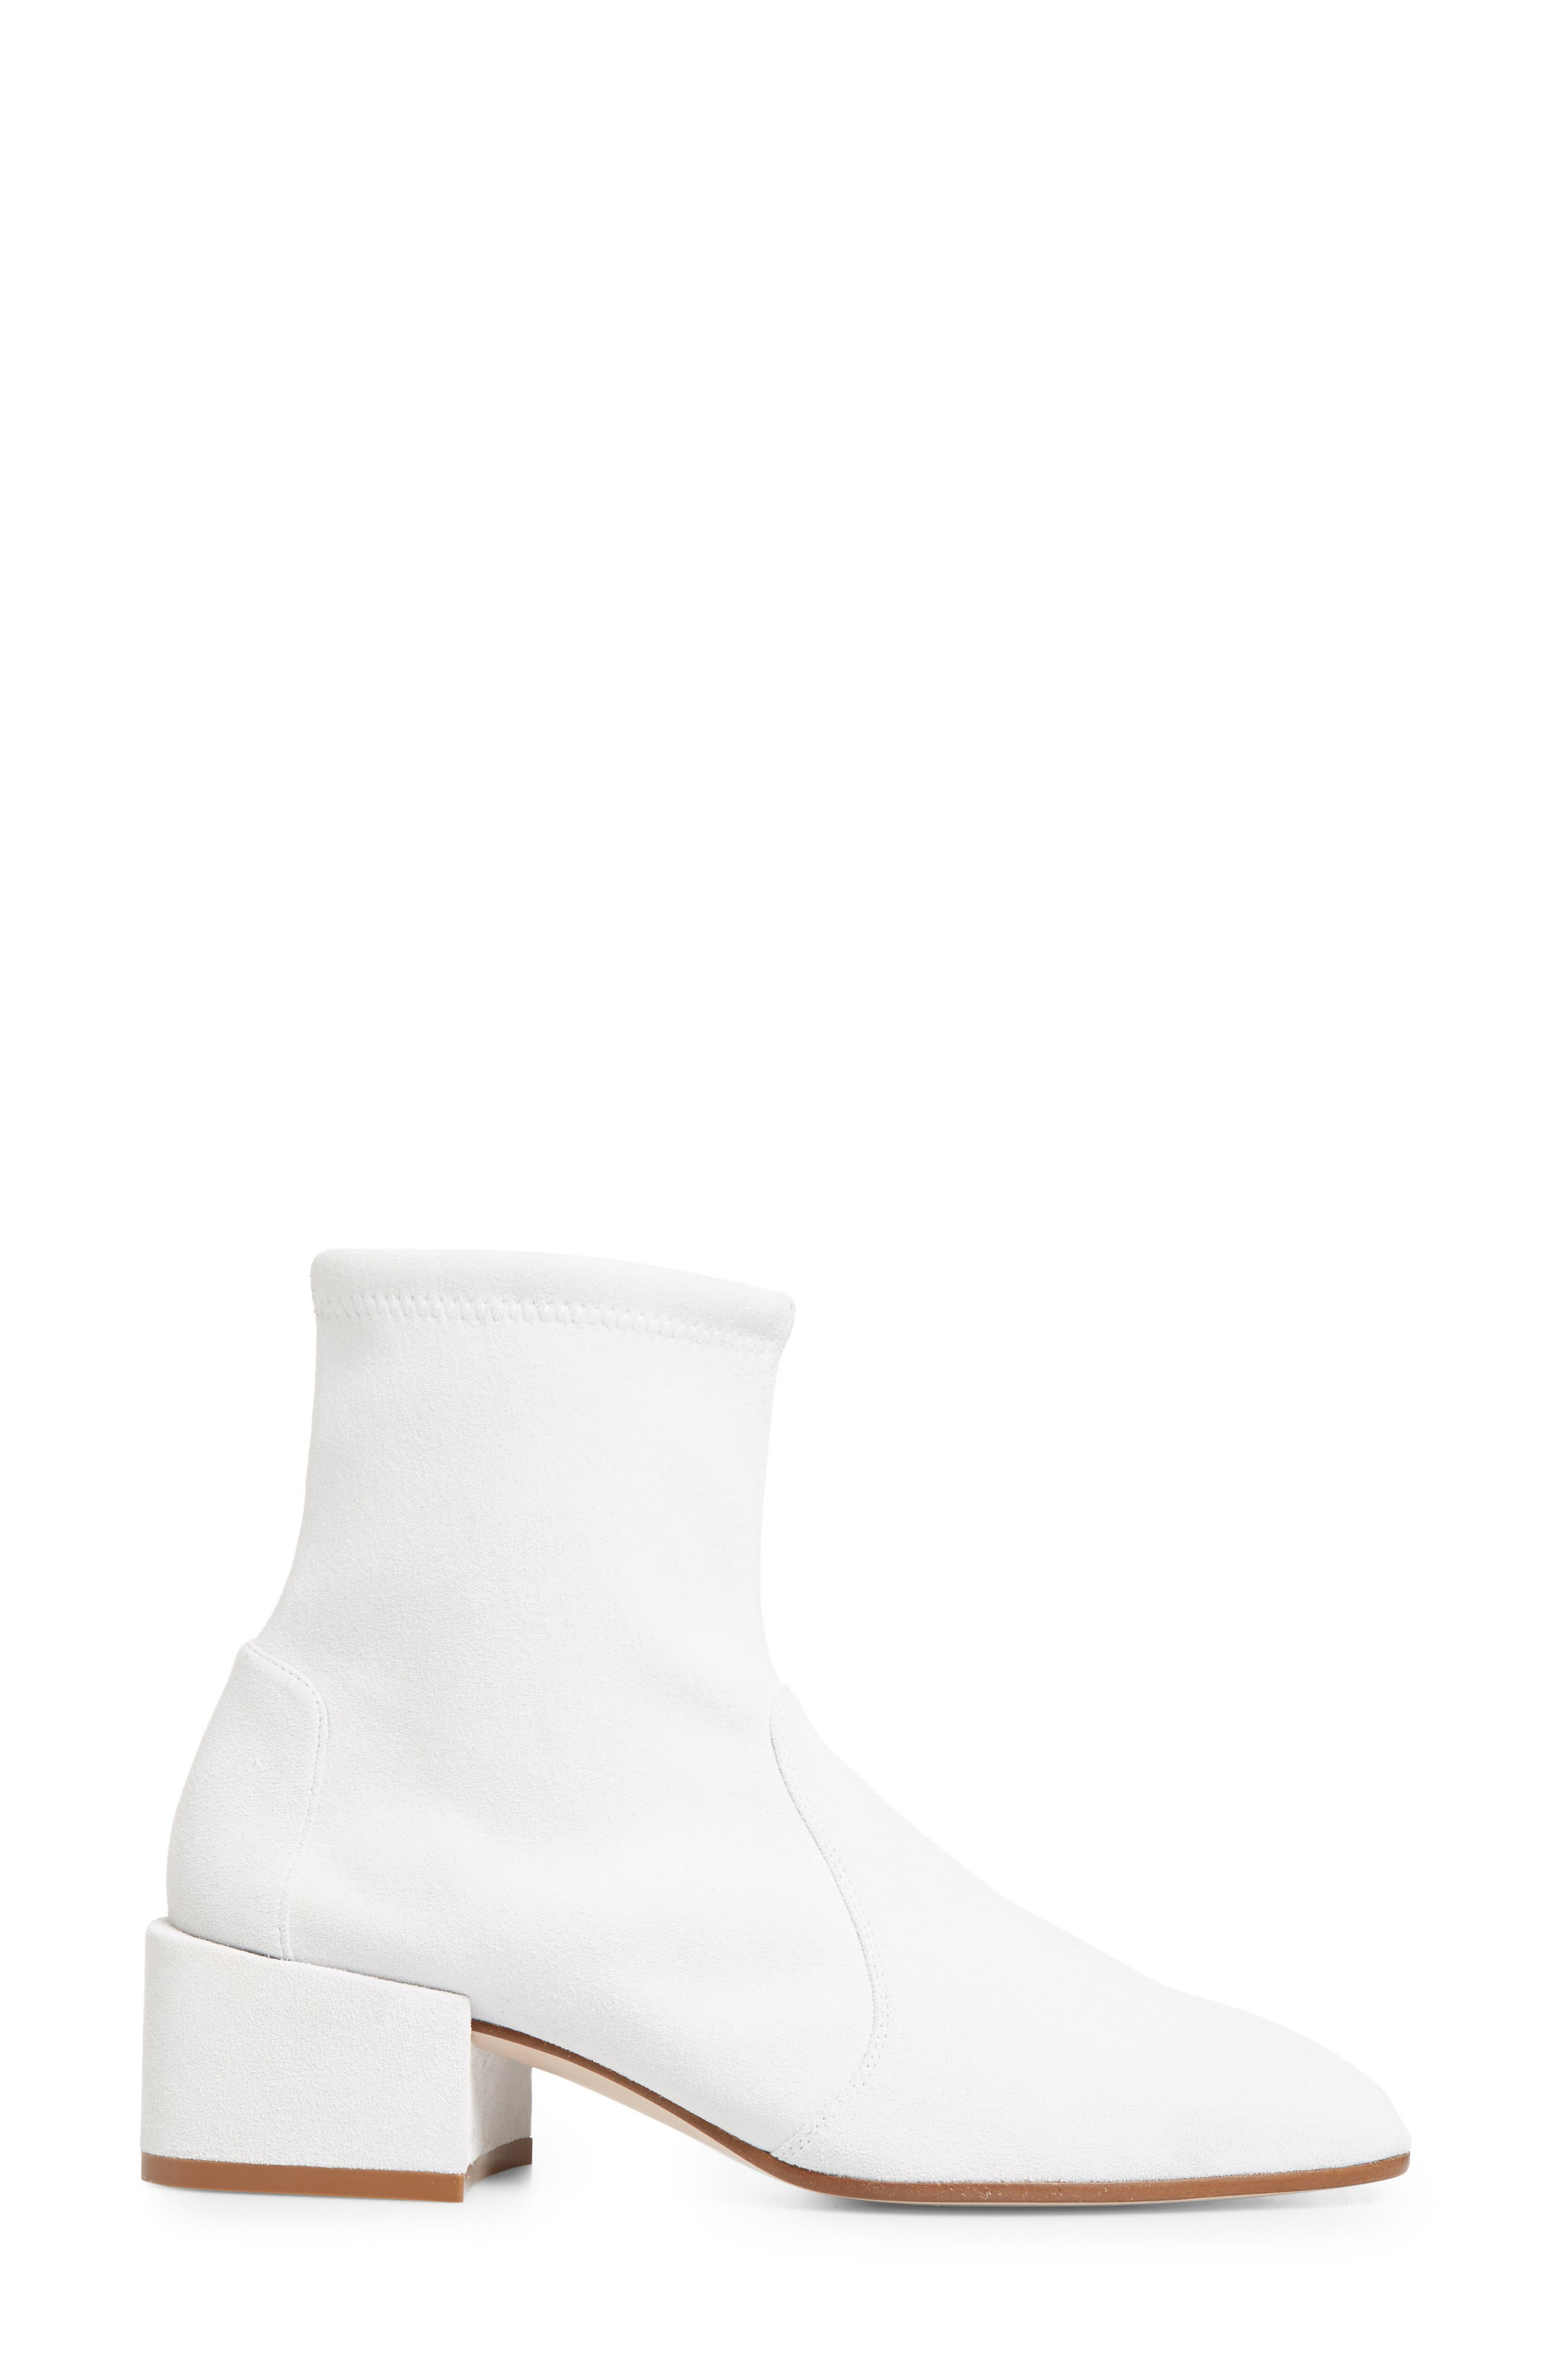 Accordion Bootie,                             Alternate thumbnail 3, color,                             Off White Seda Suede